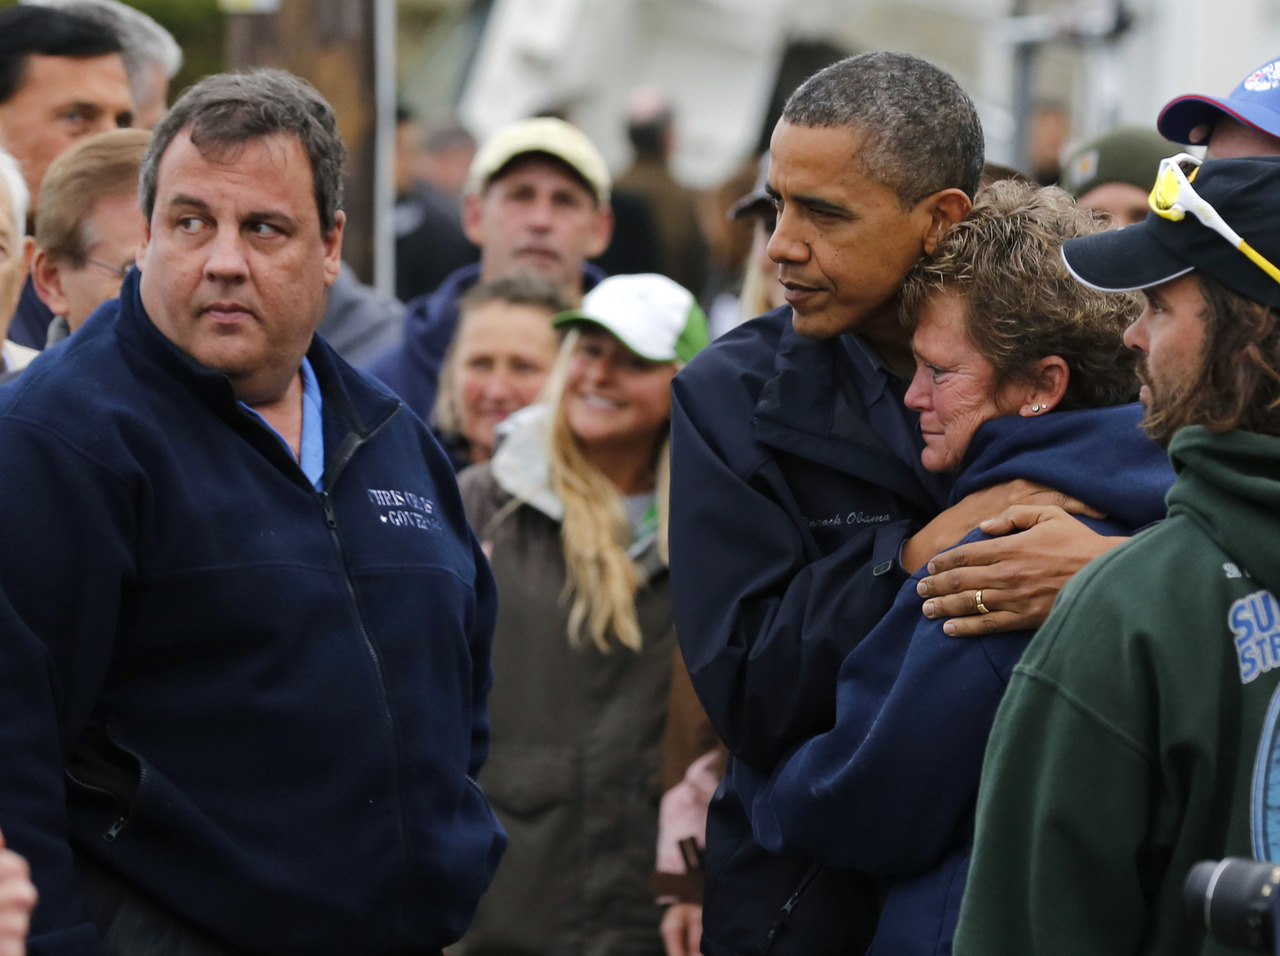 reuters:  U.S. President Barack Obama (3rd L) hugs North Point Marina owner Donna Vanzant as he tours damage done by Hurricane Sandy in Brigantine, New Jersey, October 31, 2012. At left is New Jersey Governor Chris Christie. Putting aside partisan differences, Obama and Christie toured storm-stricken parts of New Jersey together on Wednesday, taking in scenes of flooded roads and burning homes in the aftermath of superstorm Sandy. REUTERS/Larry DowningNEWS/UPDATES/RESOURCES: Live coverage of storm Sandy recovery